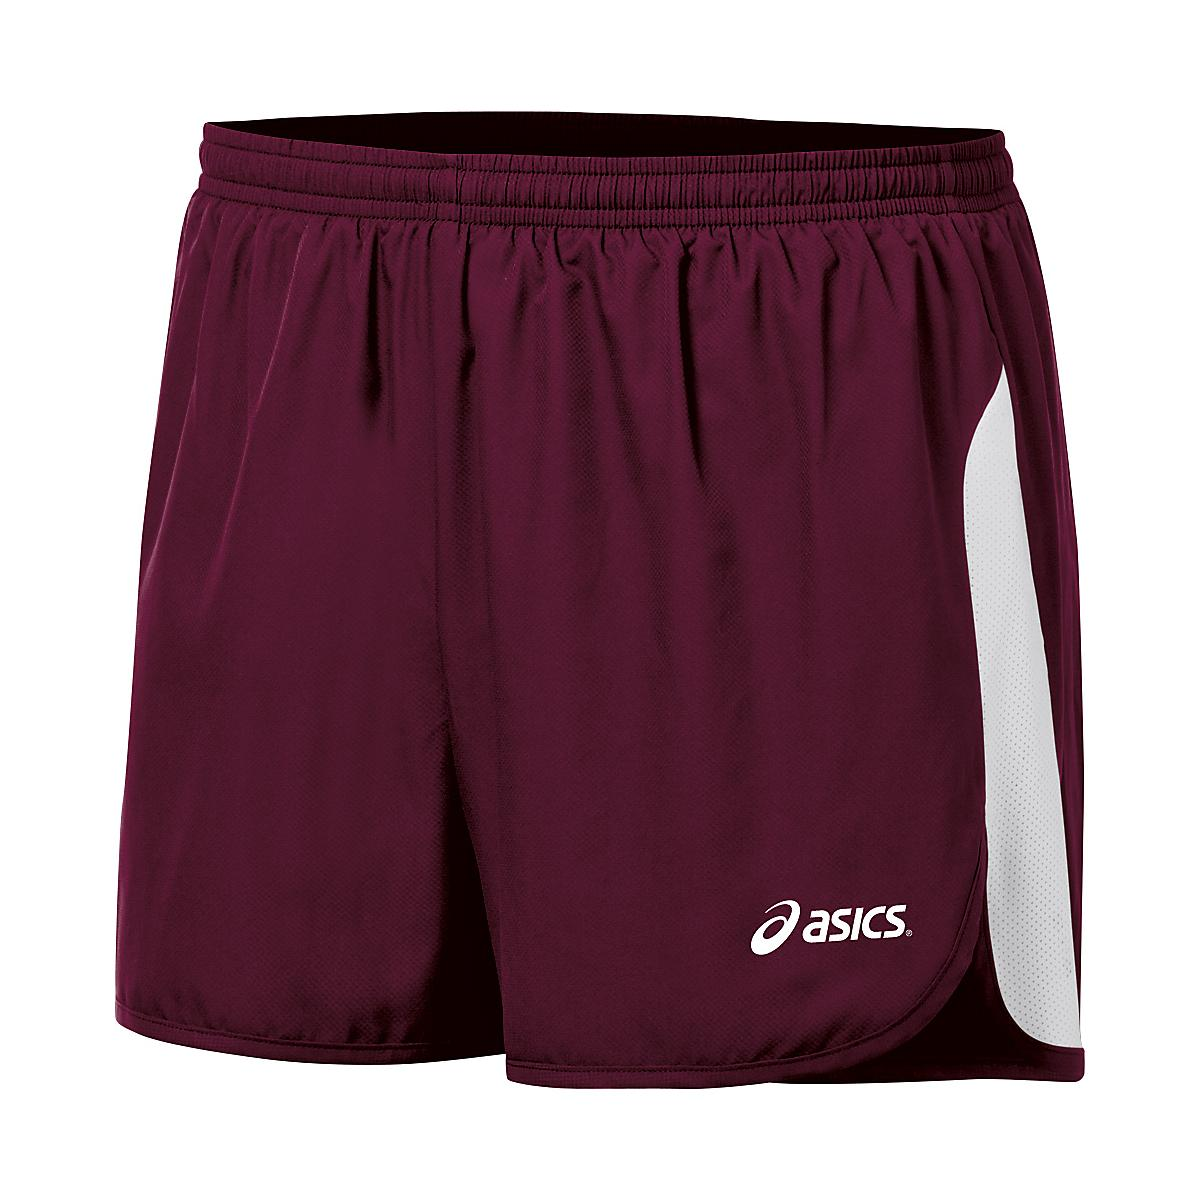 Men's ASICS�Wicked 1/2 Split Short